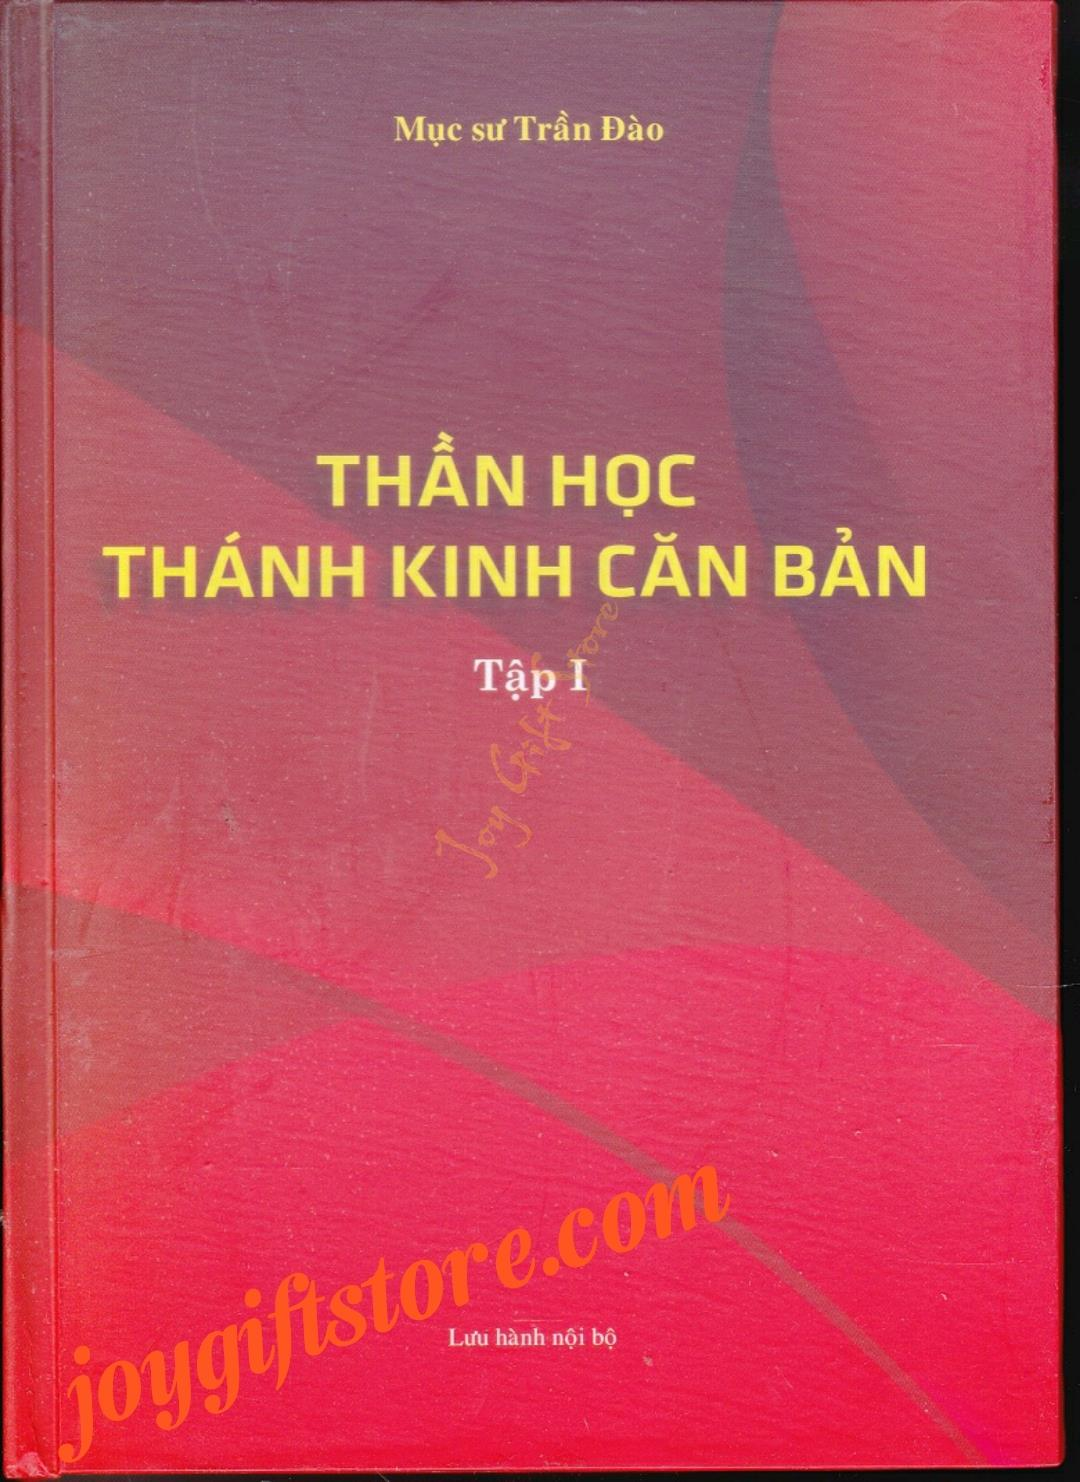 hinh anh